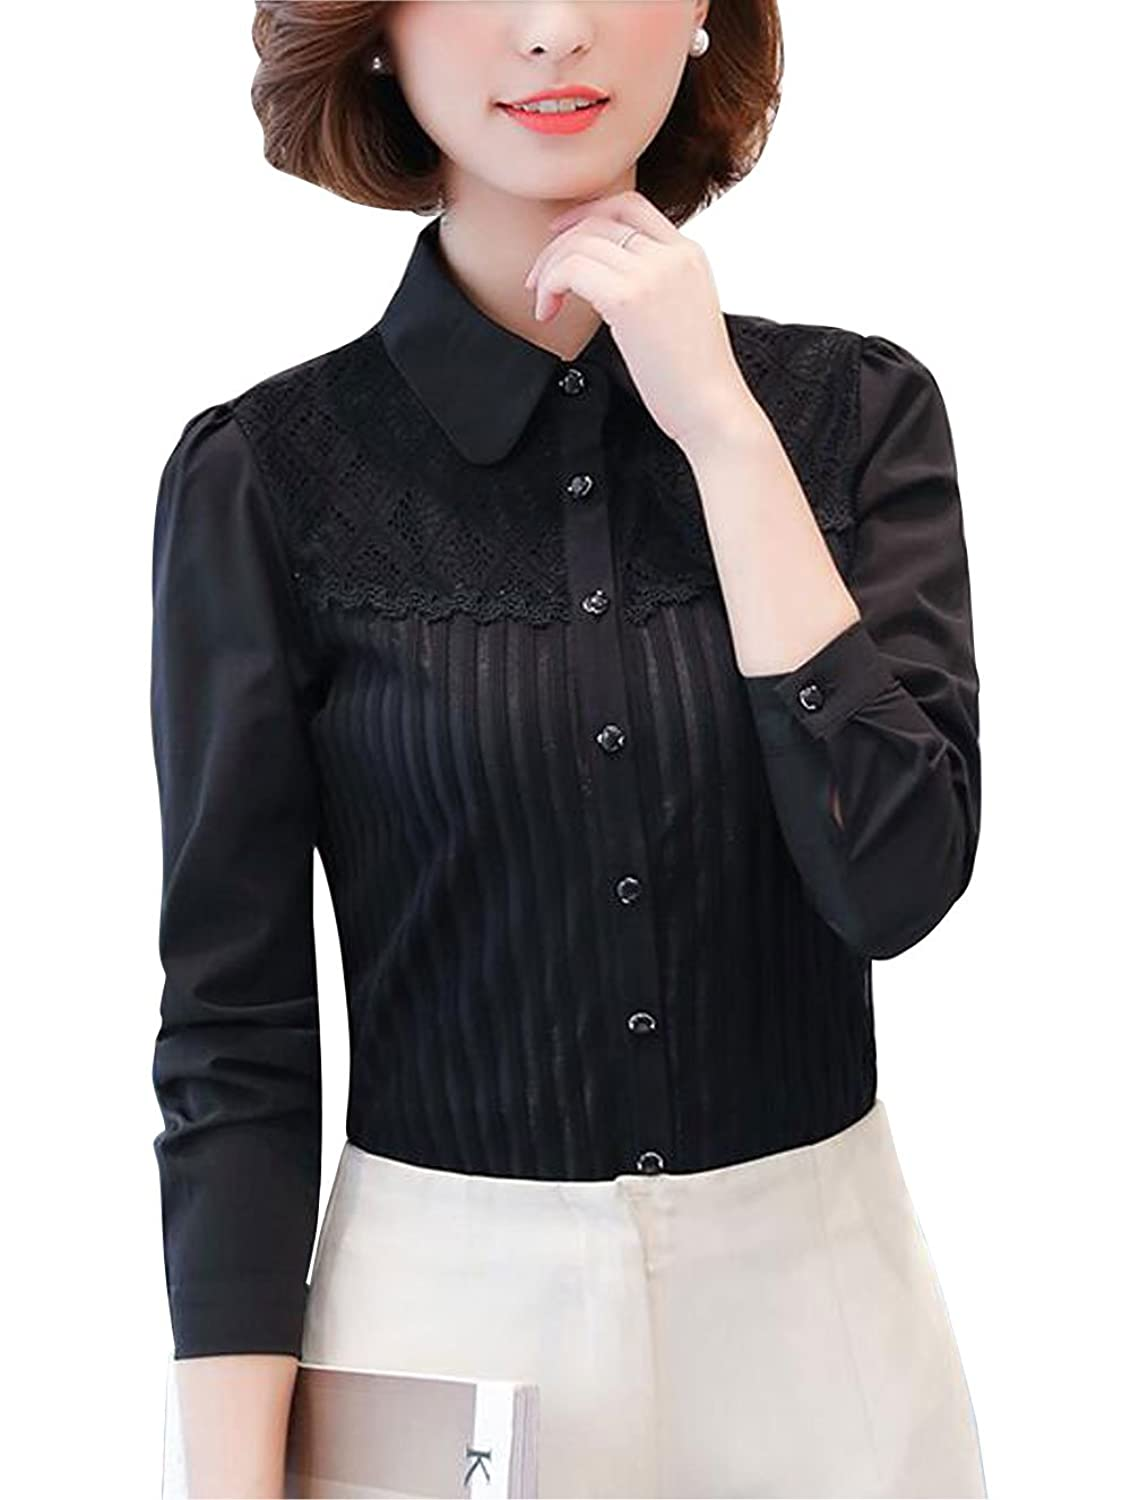 Victorian Plus Size Dresses | Edwardian Clothing, Costumes Double Plus Open DPO Womens Vintage Collared Pleated Button Down Shirt Long Sleeve Lace Stretchy Blouse $23.59 AT vintagedancer.com